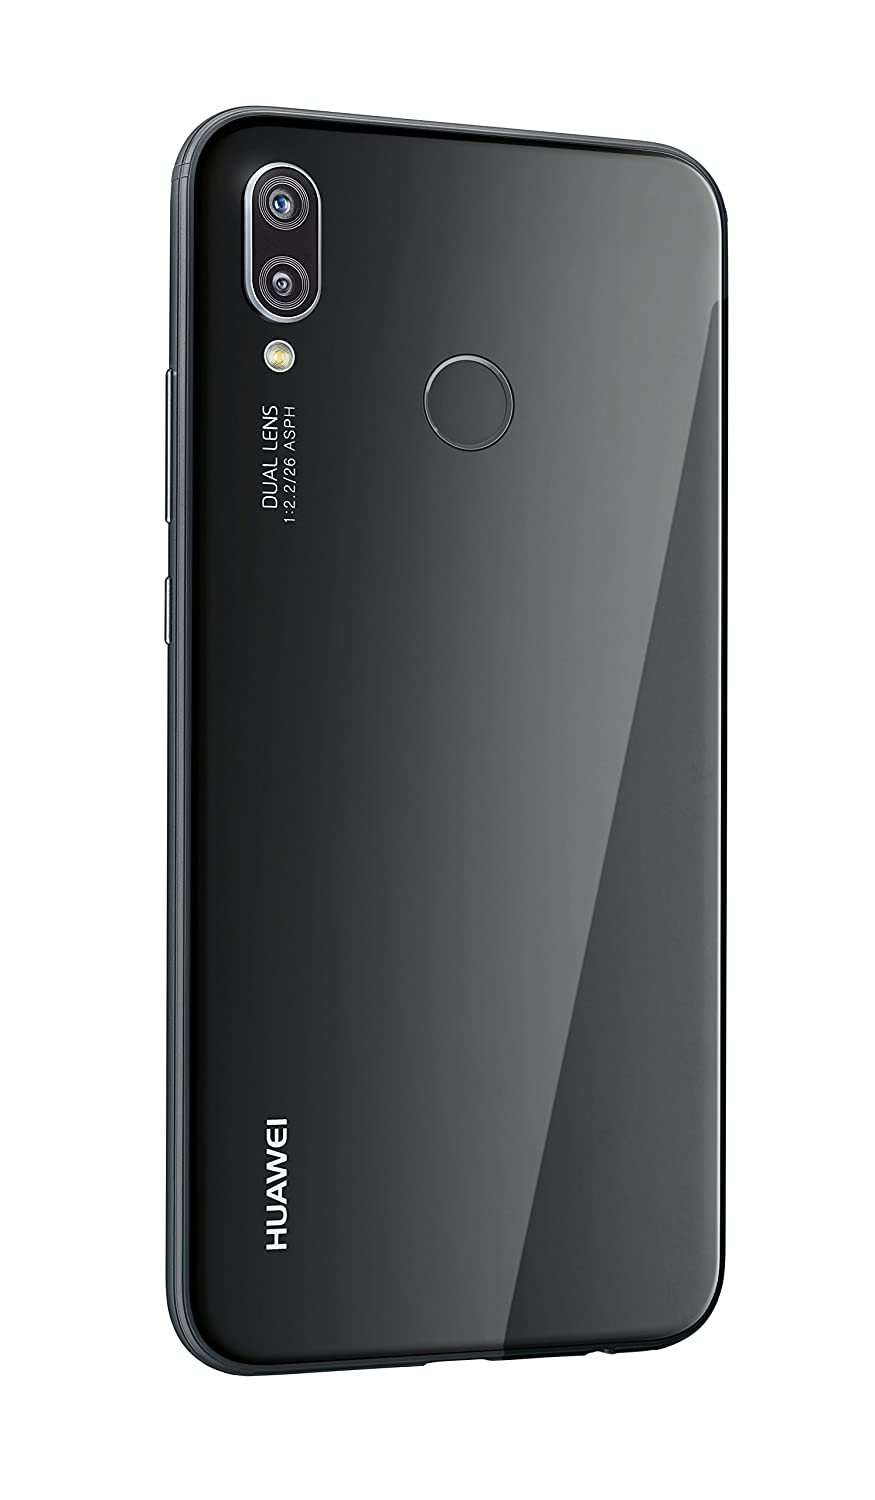 huawei p20 lite smartphone cm inch 64gb internal. Black Bedroom Furniture Sets. Home Design Ideas